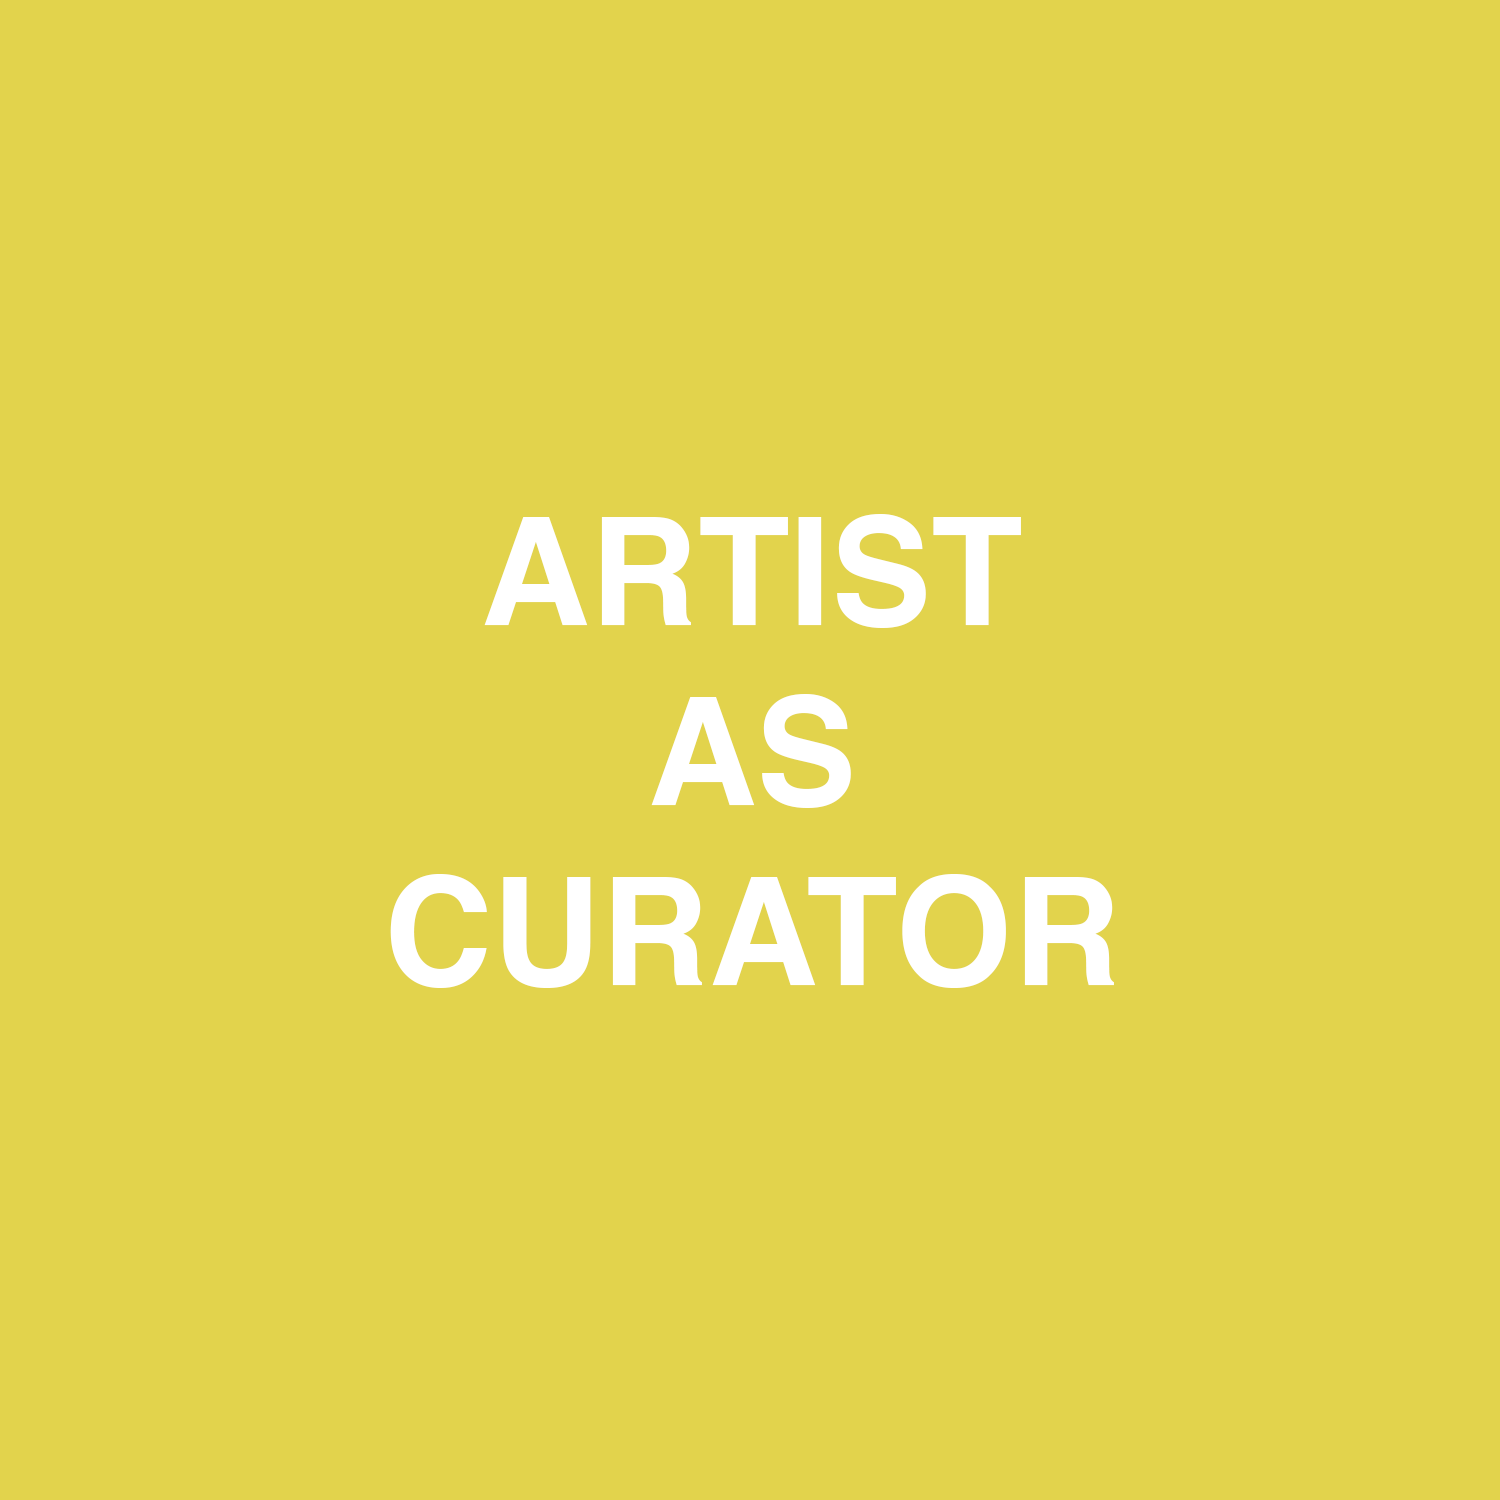 ARTISTASCURATOR.png